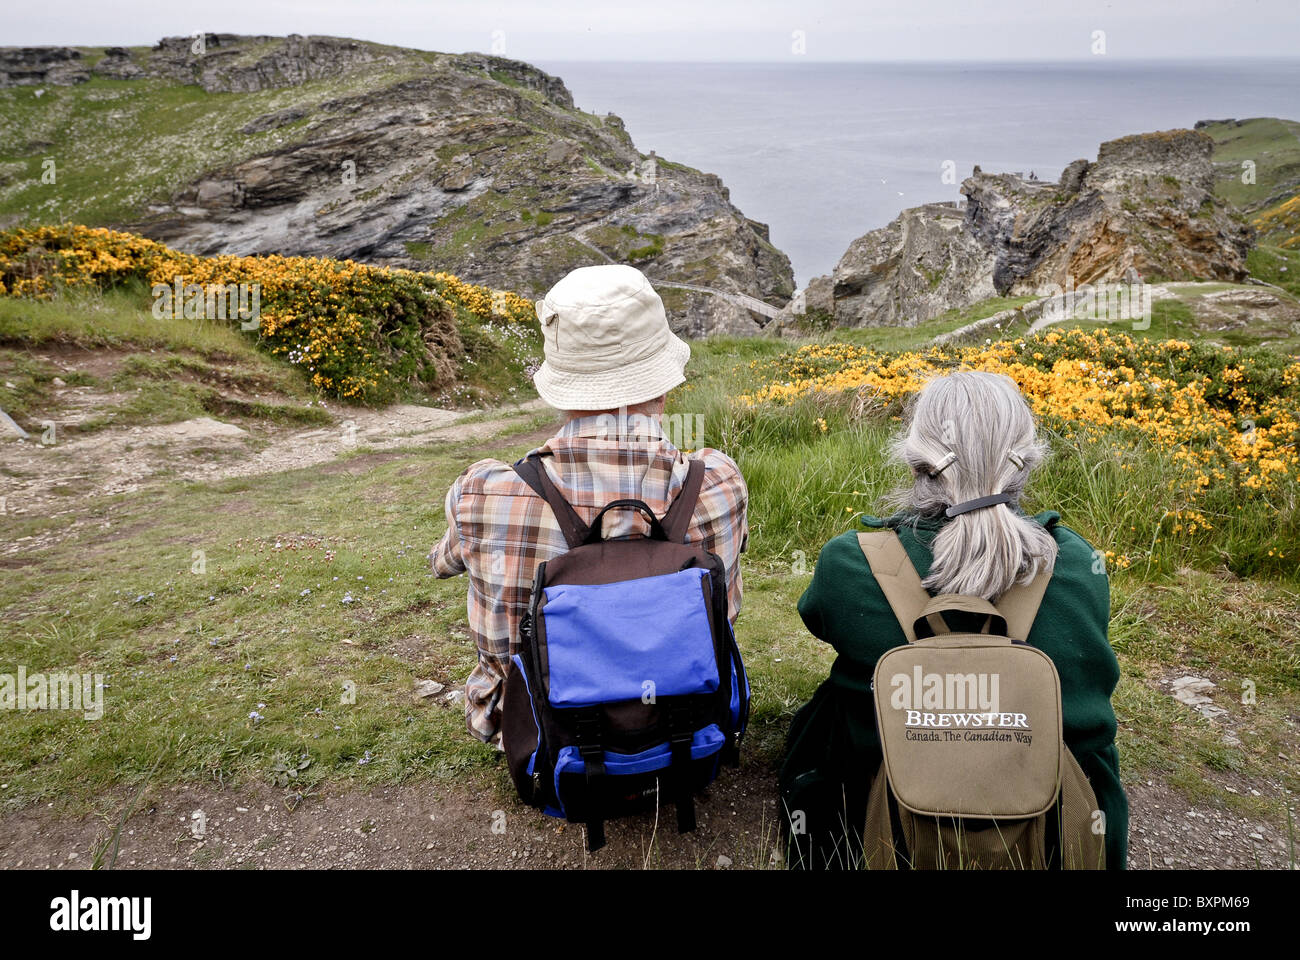 ELDERLY COUPLE OF RAMBLERS LOOKING OUT TO SEA, CORNWALL, - Stock Image